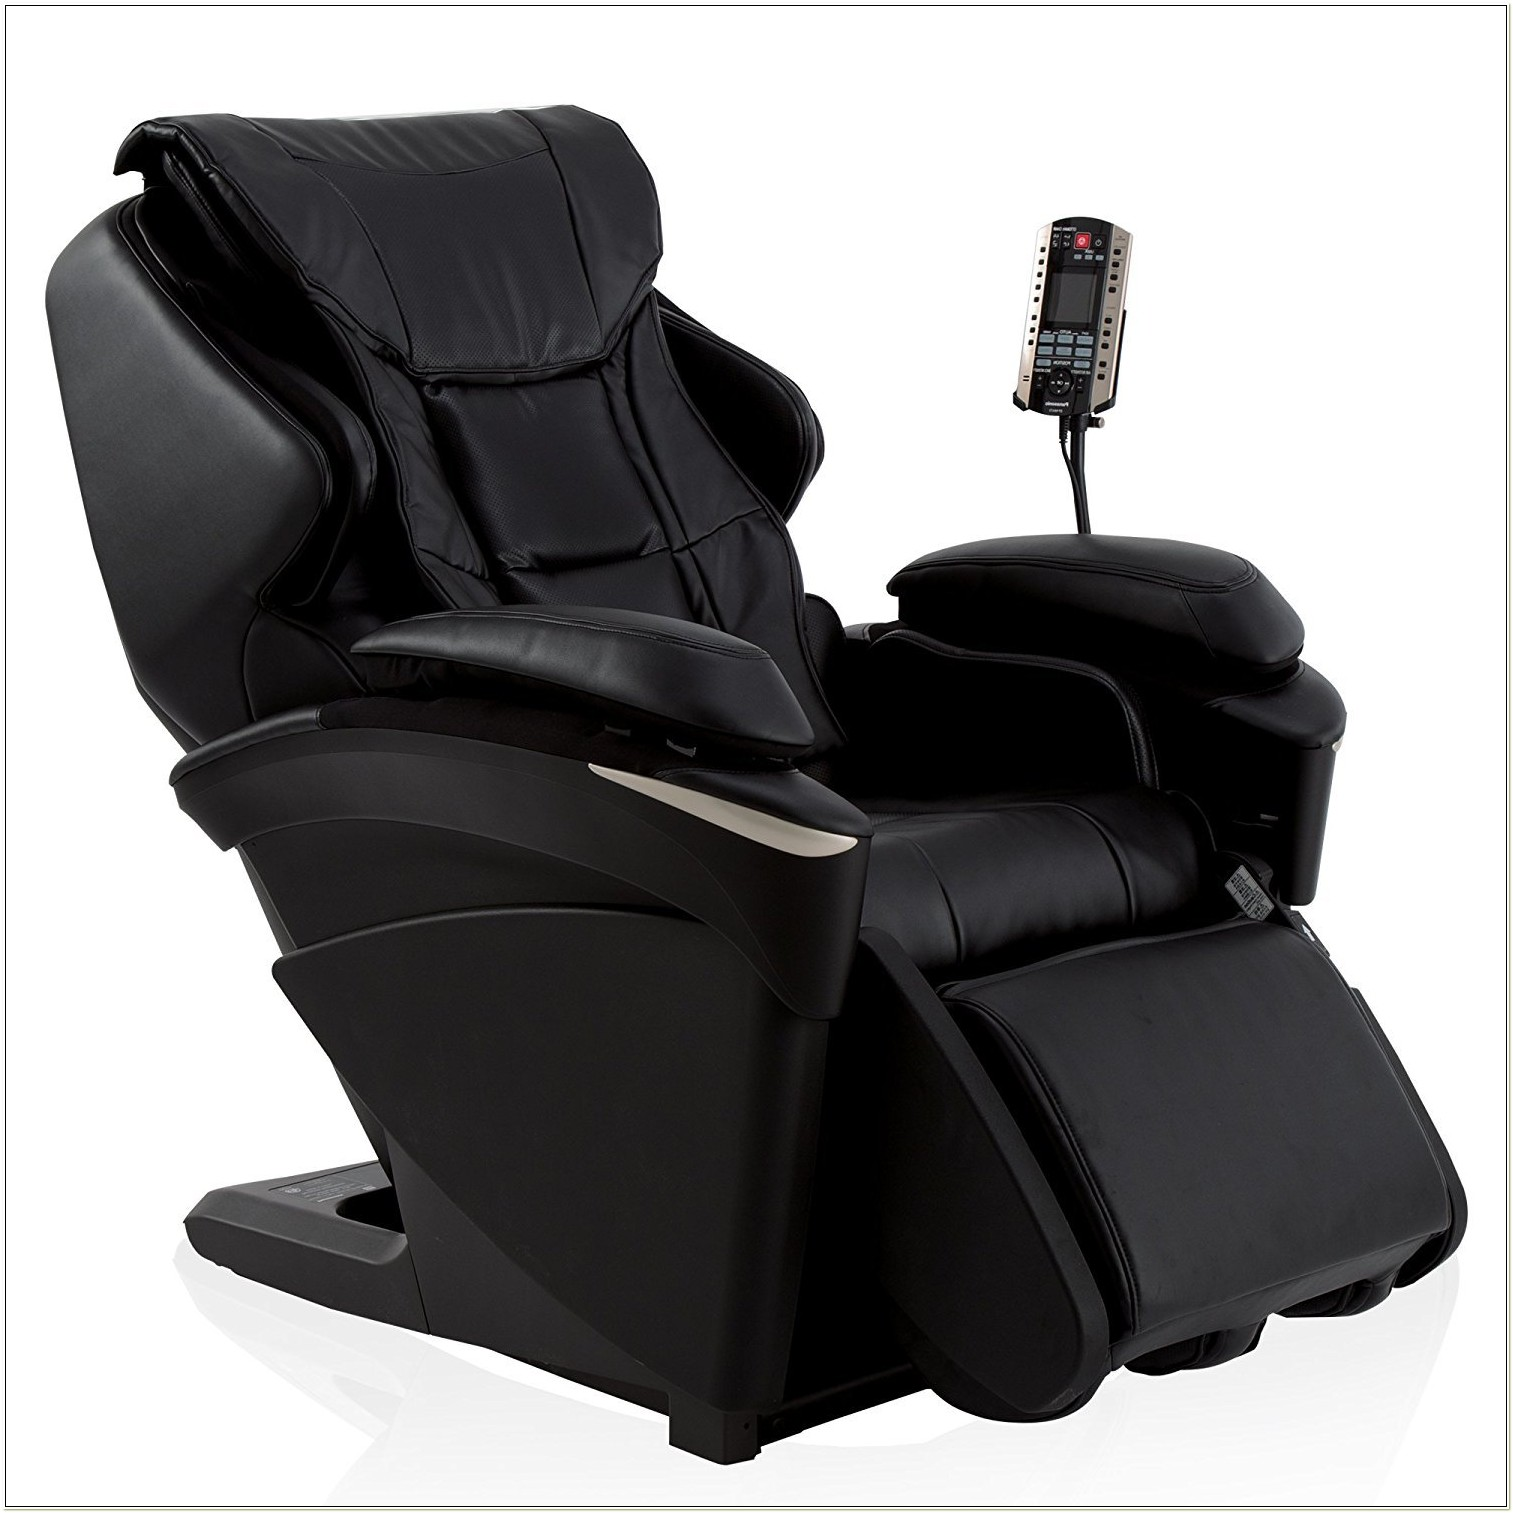 Panasonic Massage Chair Dealer Locator